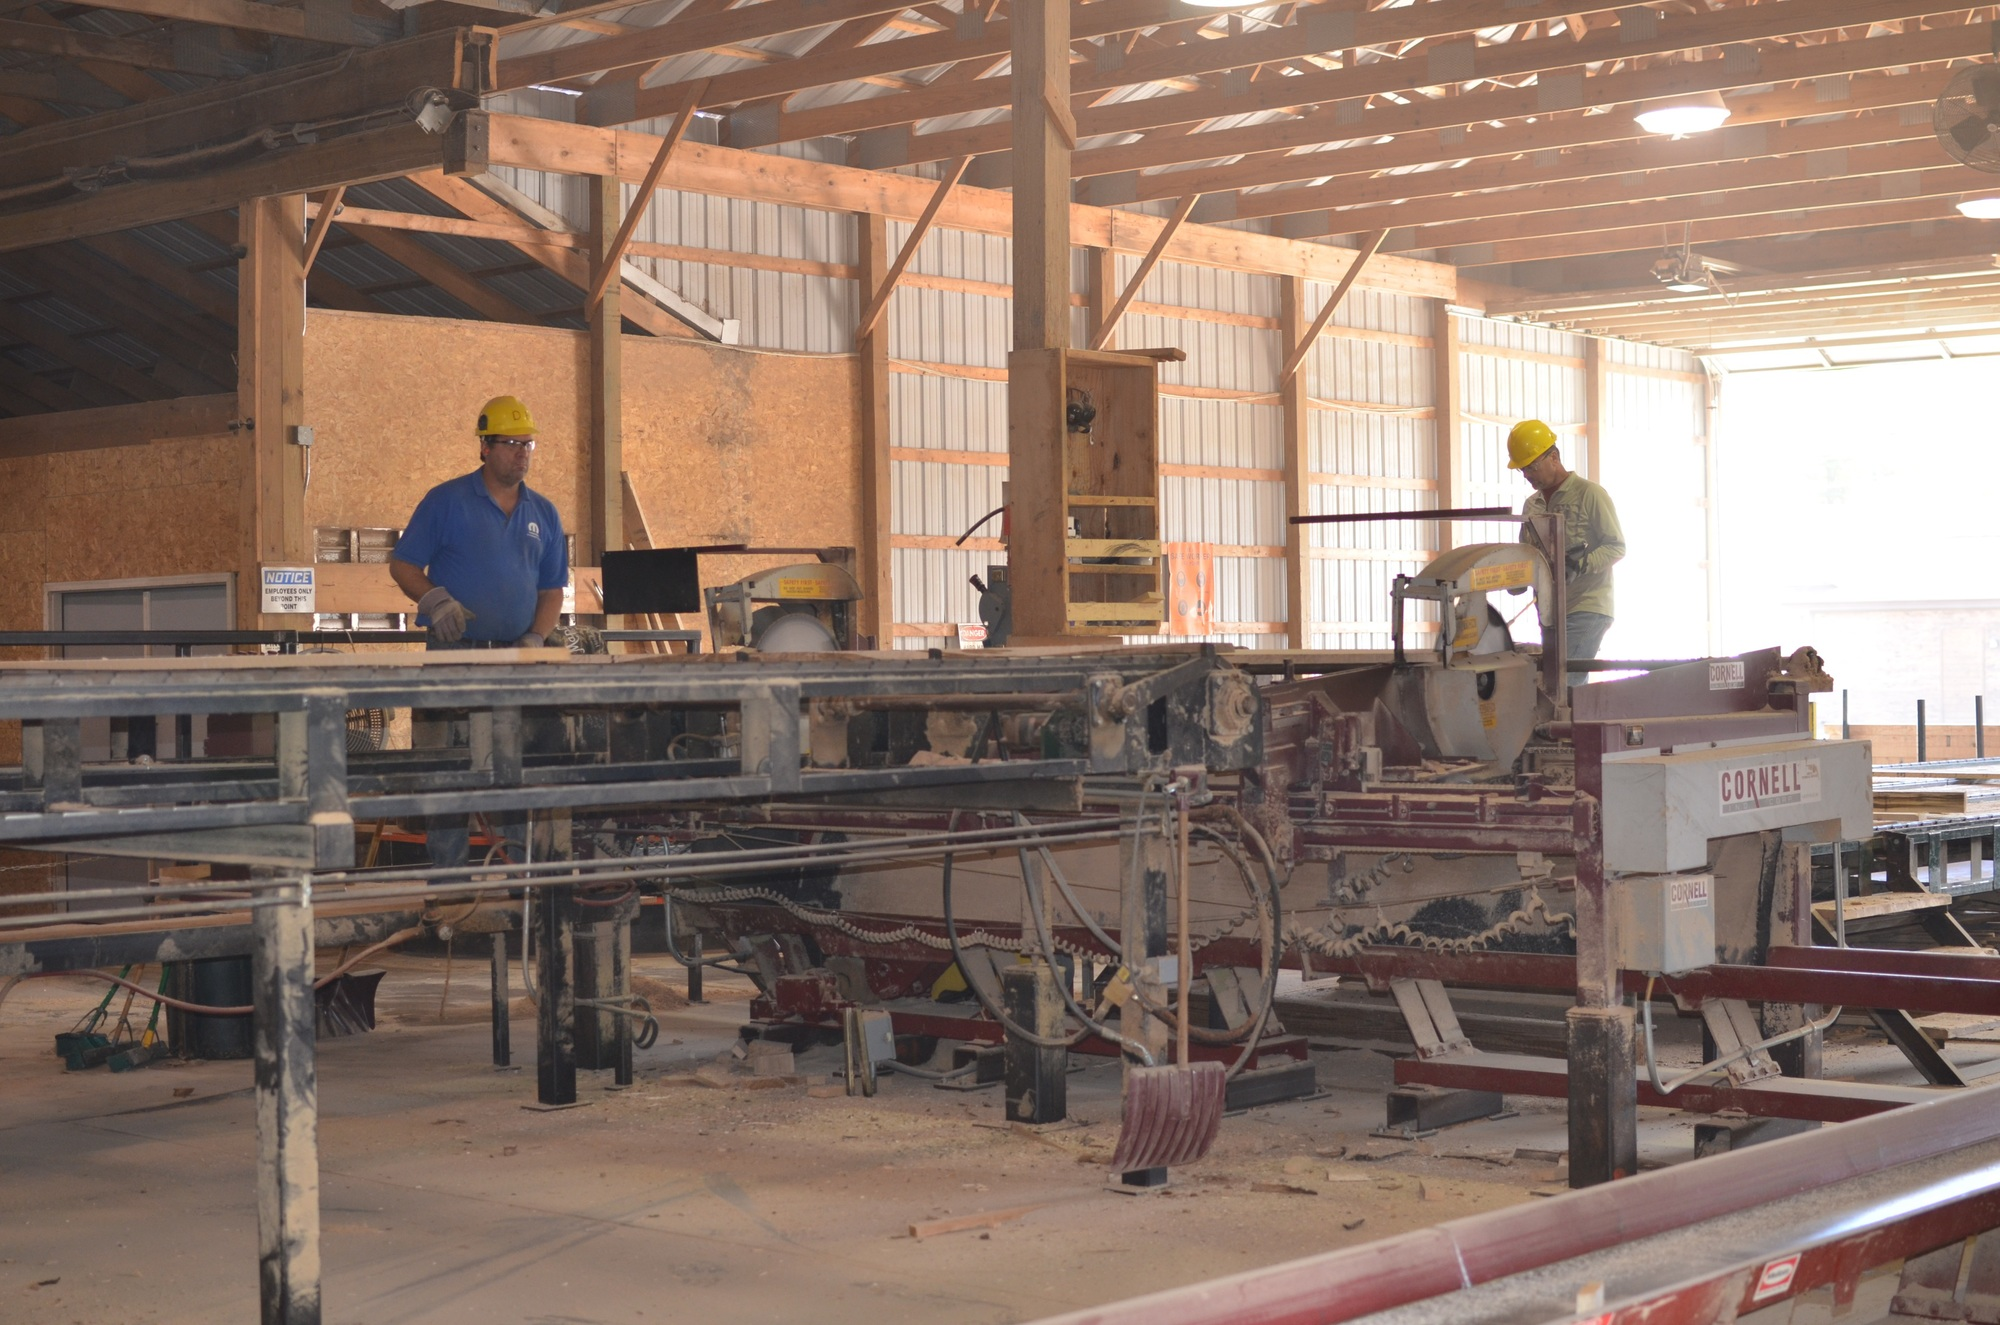 Production of forest products is an important part of Michigan's economy.